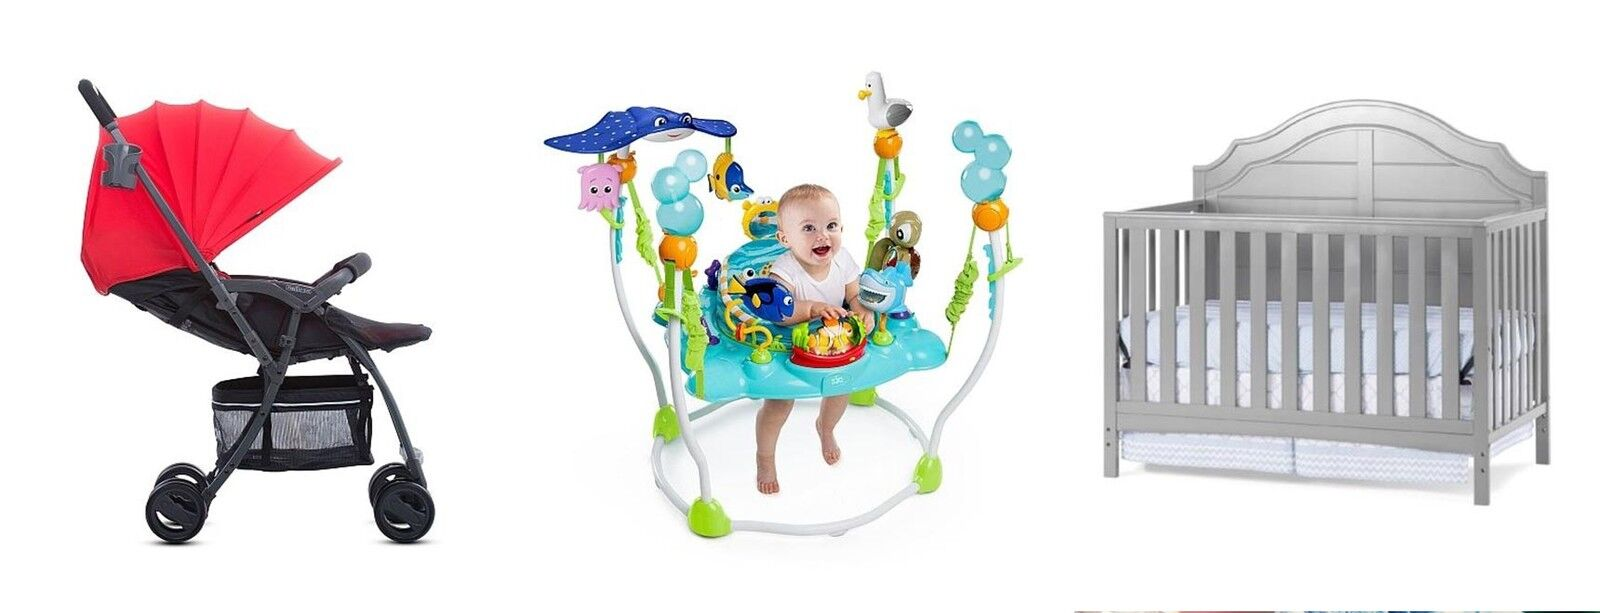 More info - Up to 25% off baby essentials